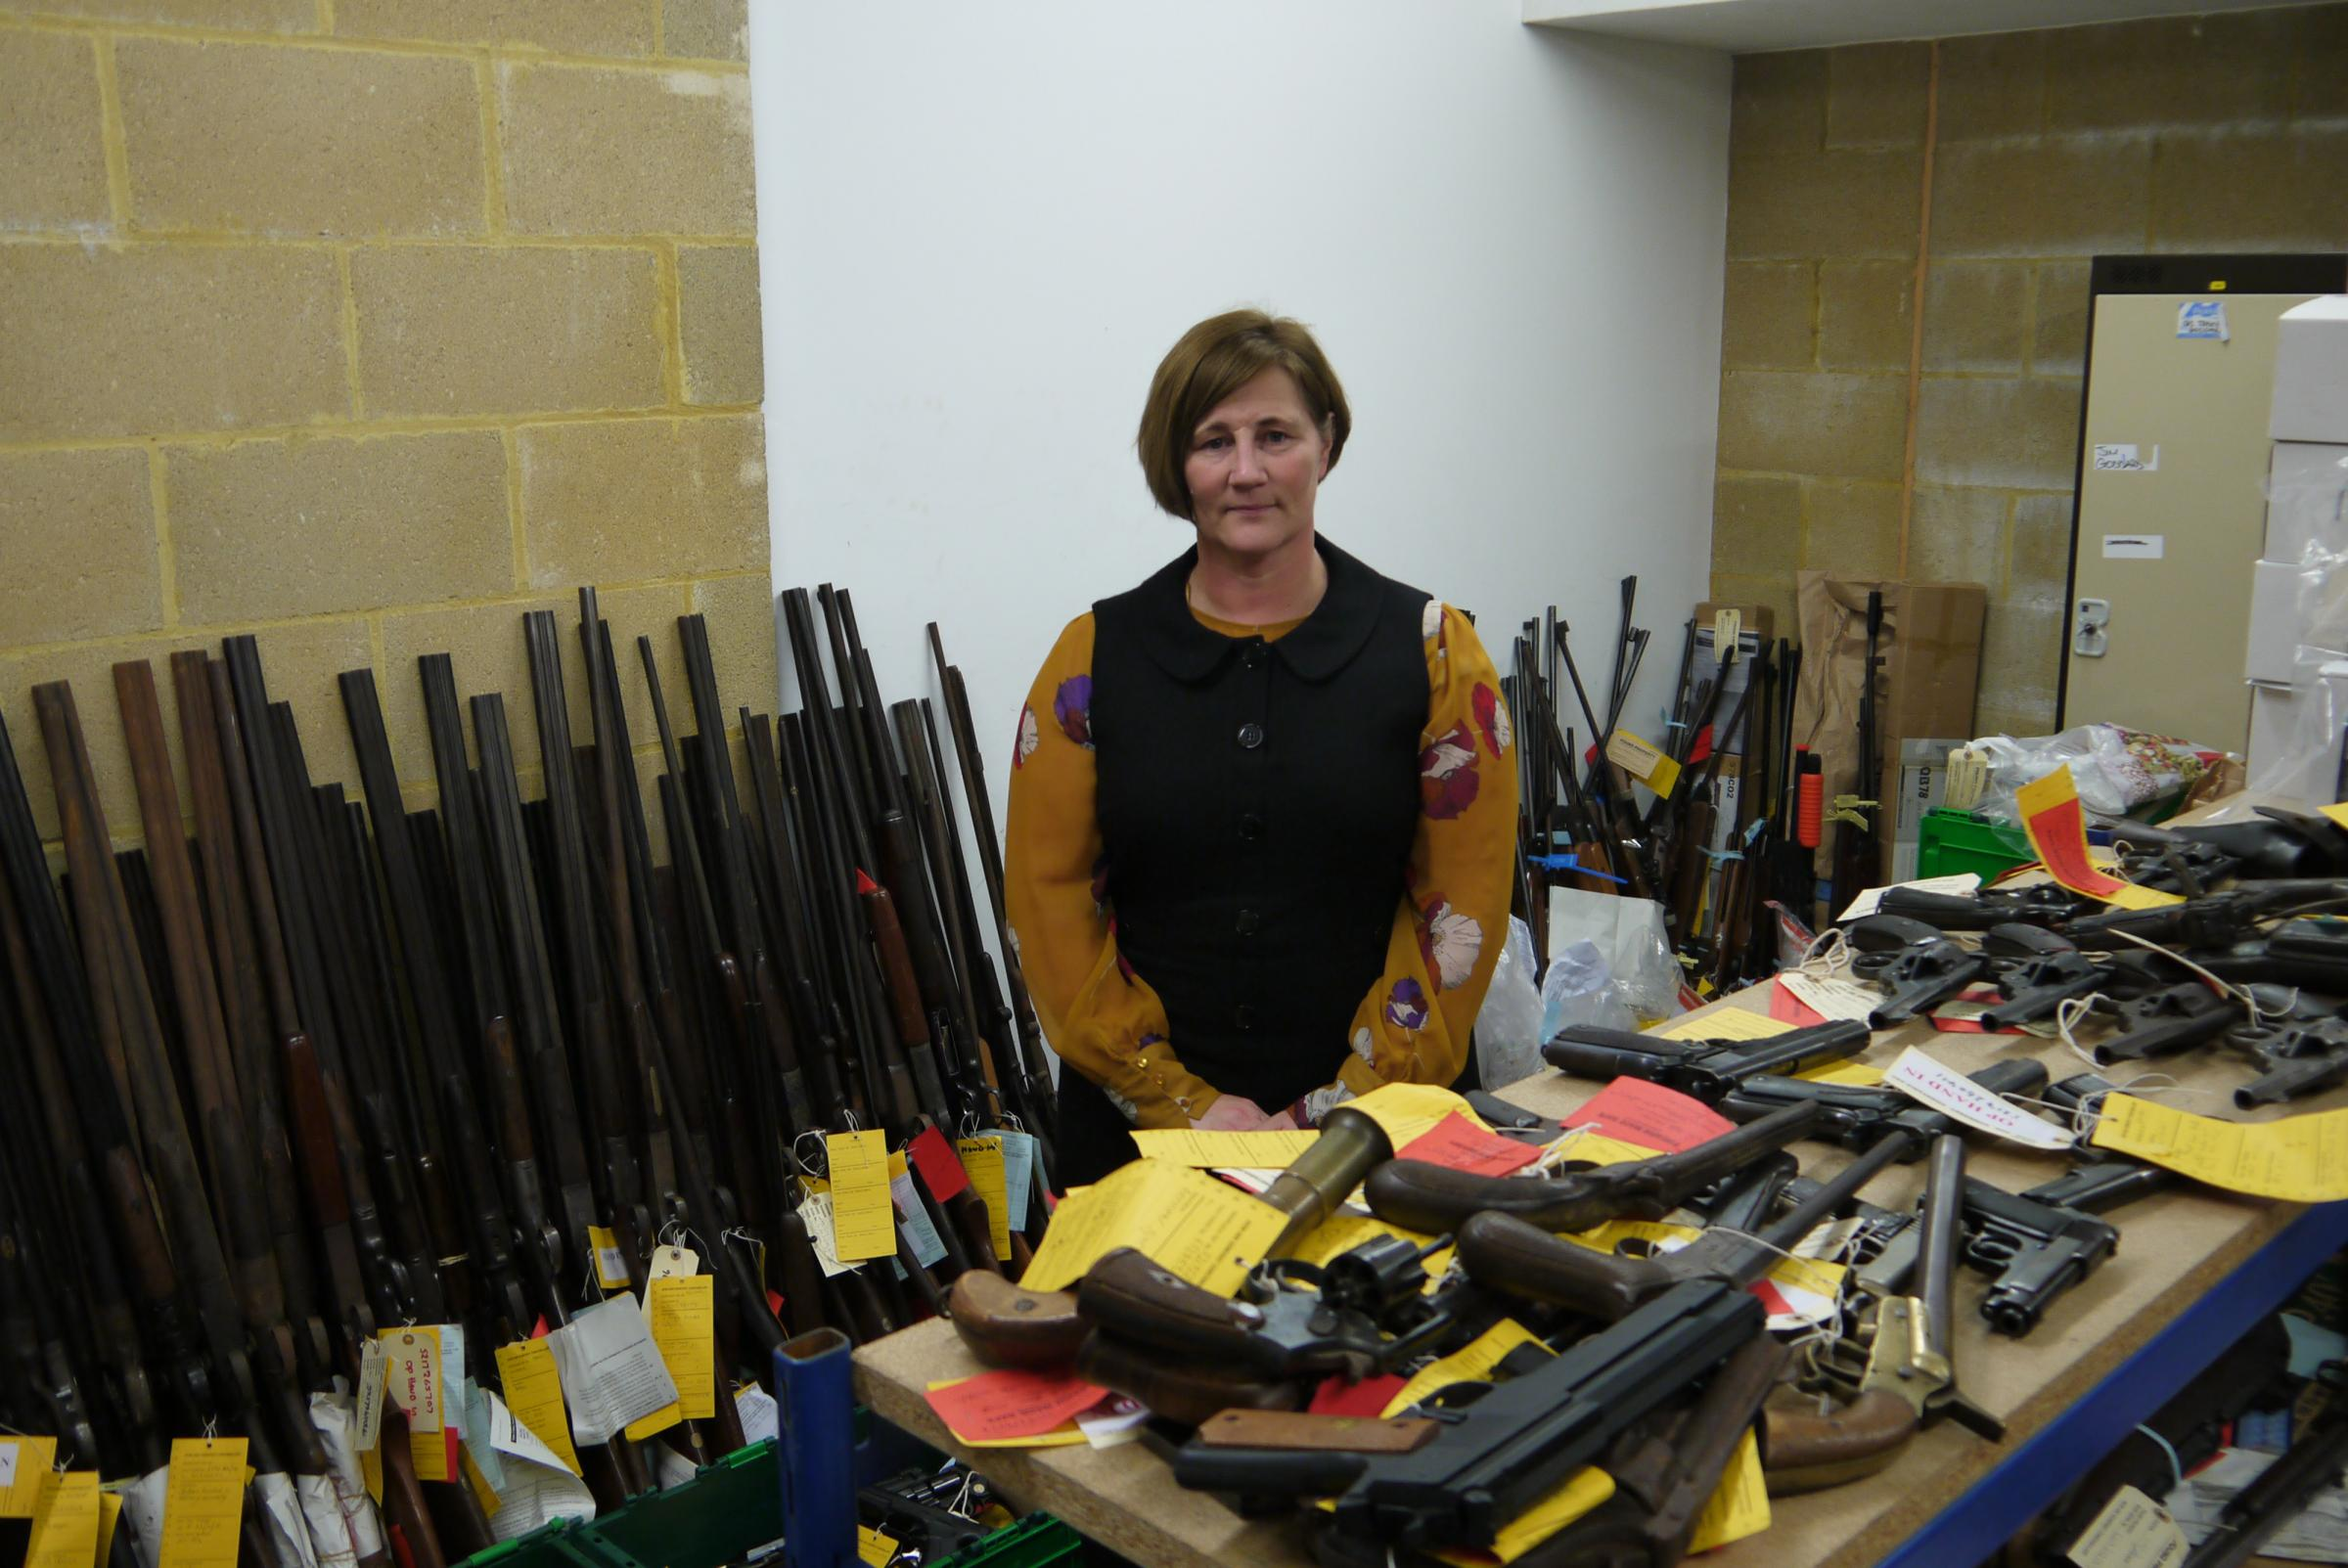 Superintendent Carolyn Belafonte with the weapons surrendered to Avon and Somerset Police